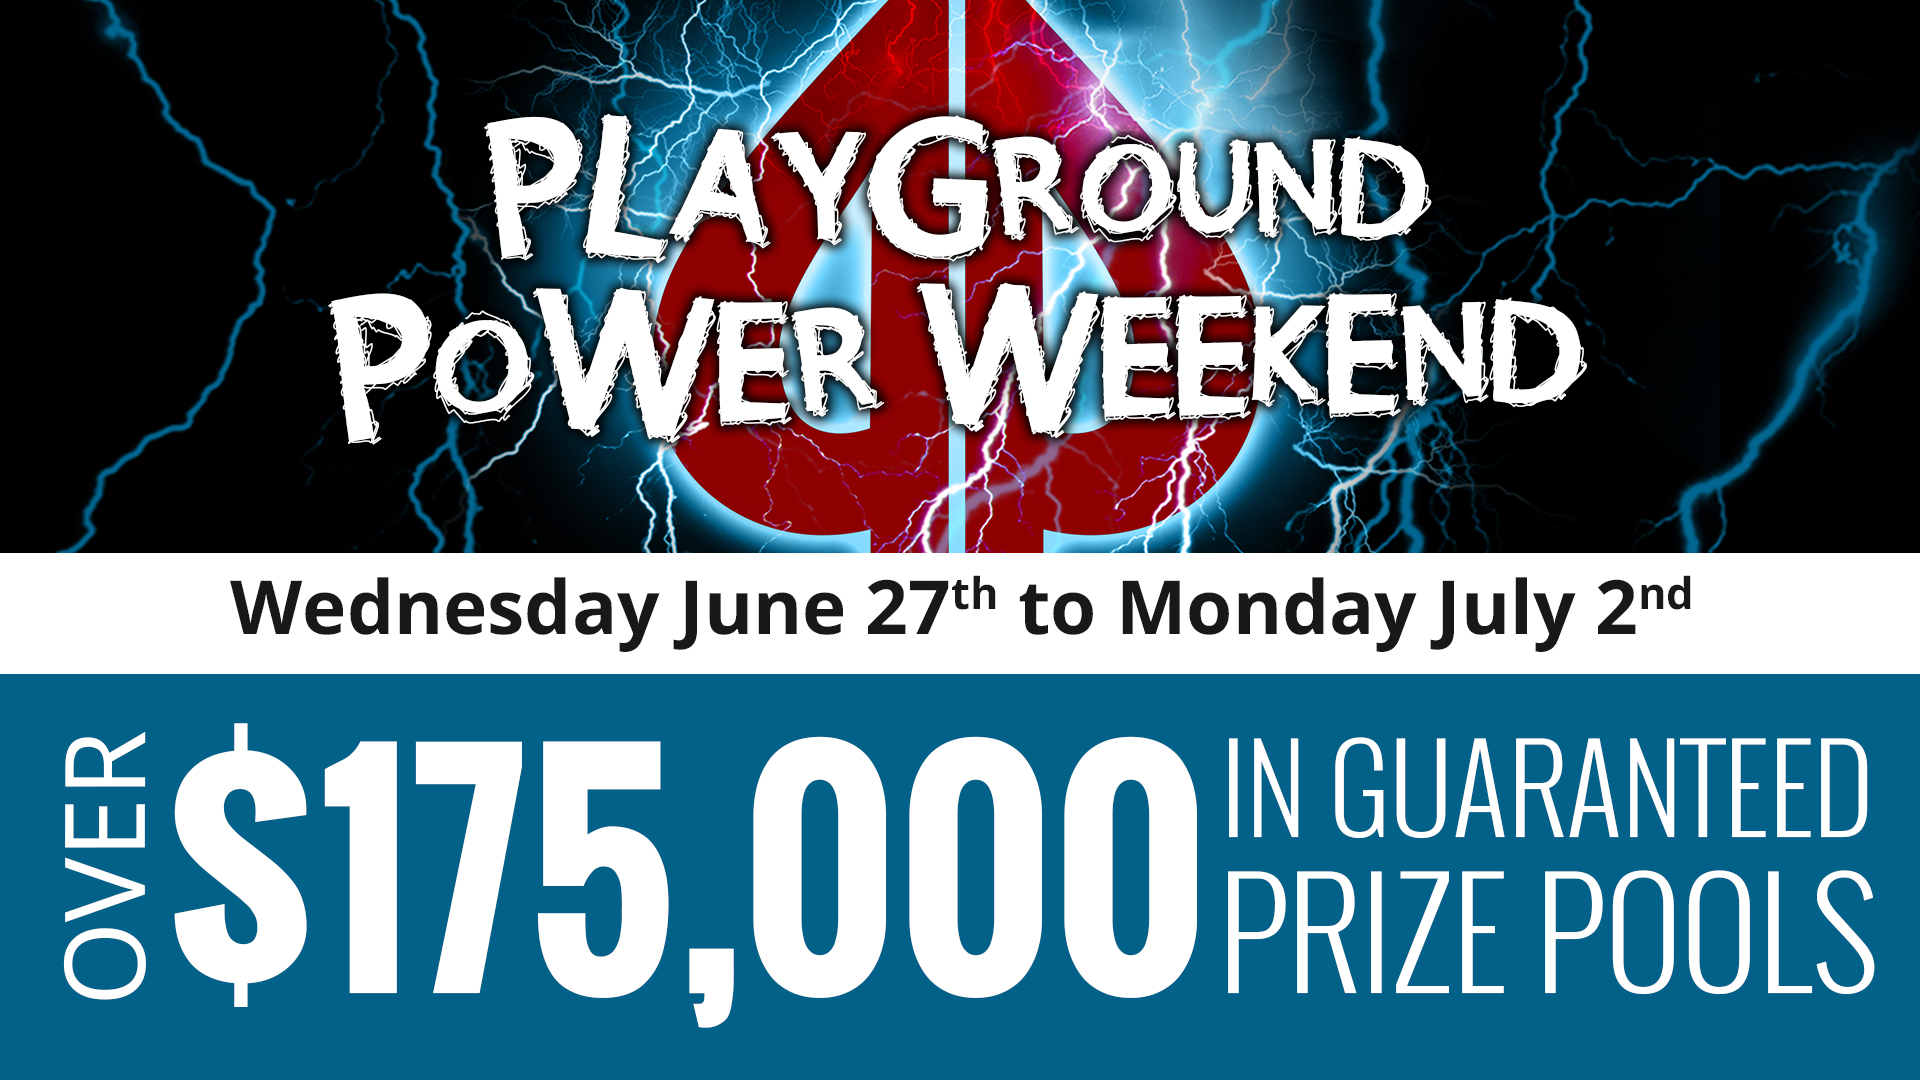 Coming in June – an all new Playground Power Weekend!